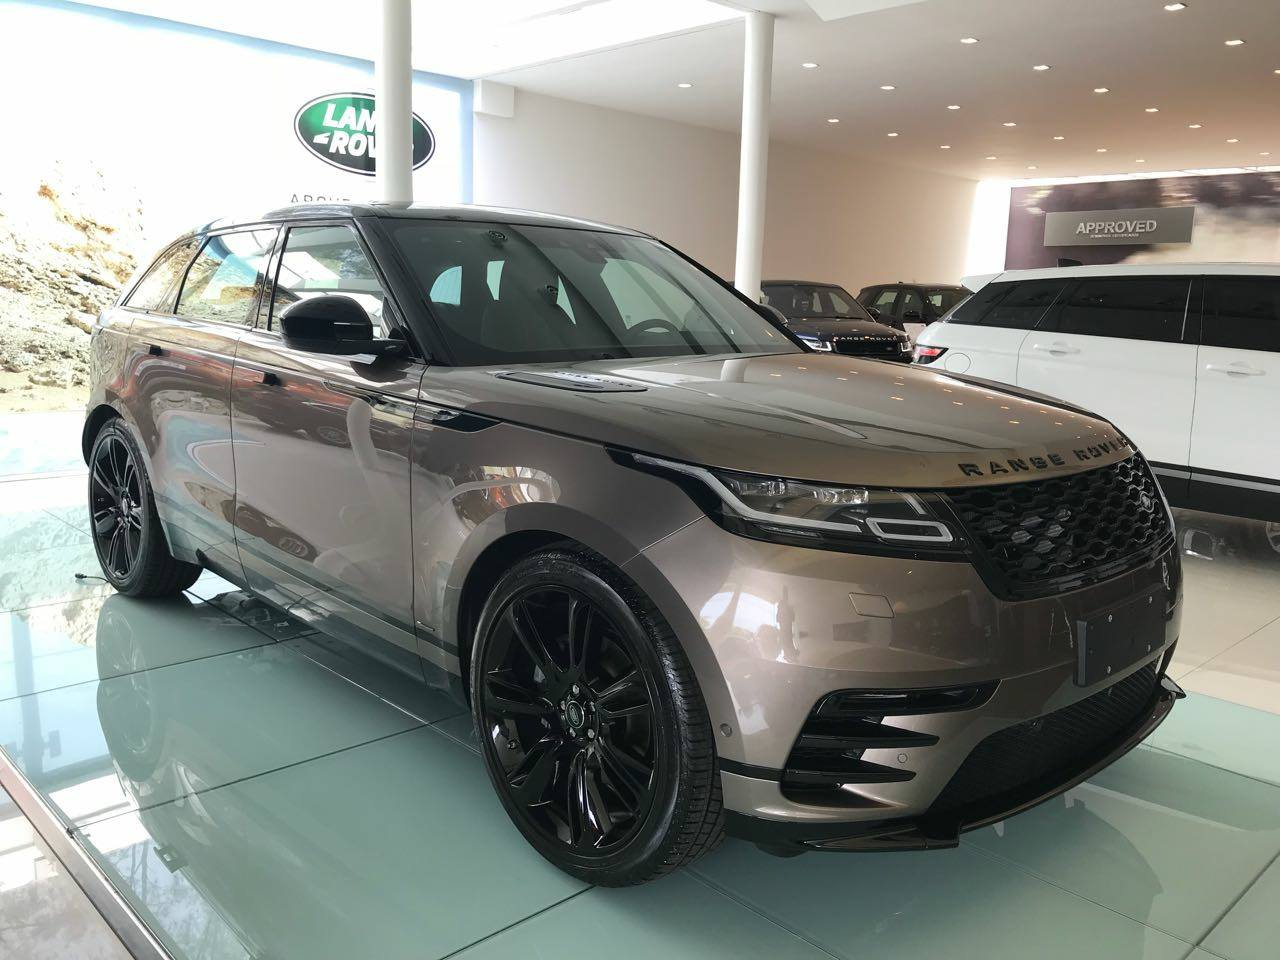 range rover velar fotos e v deo do suv no brasil pre os. Black Bedroom Furniture Sets. Home Design Ideas